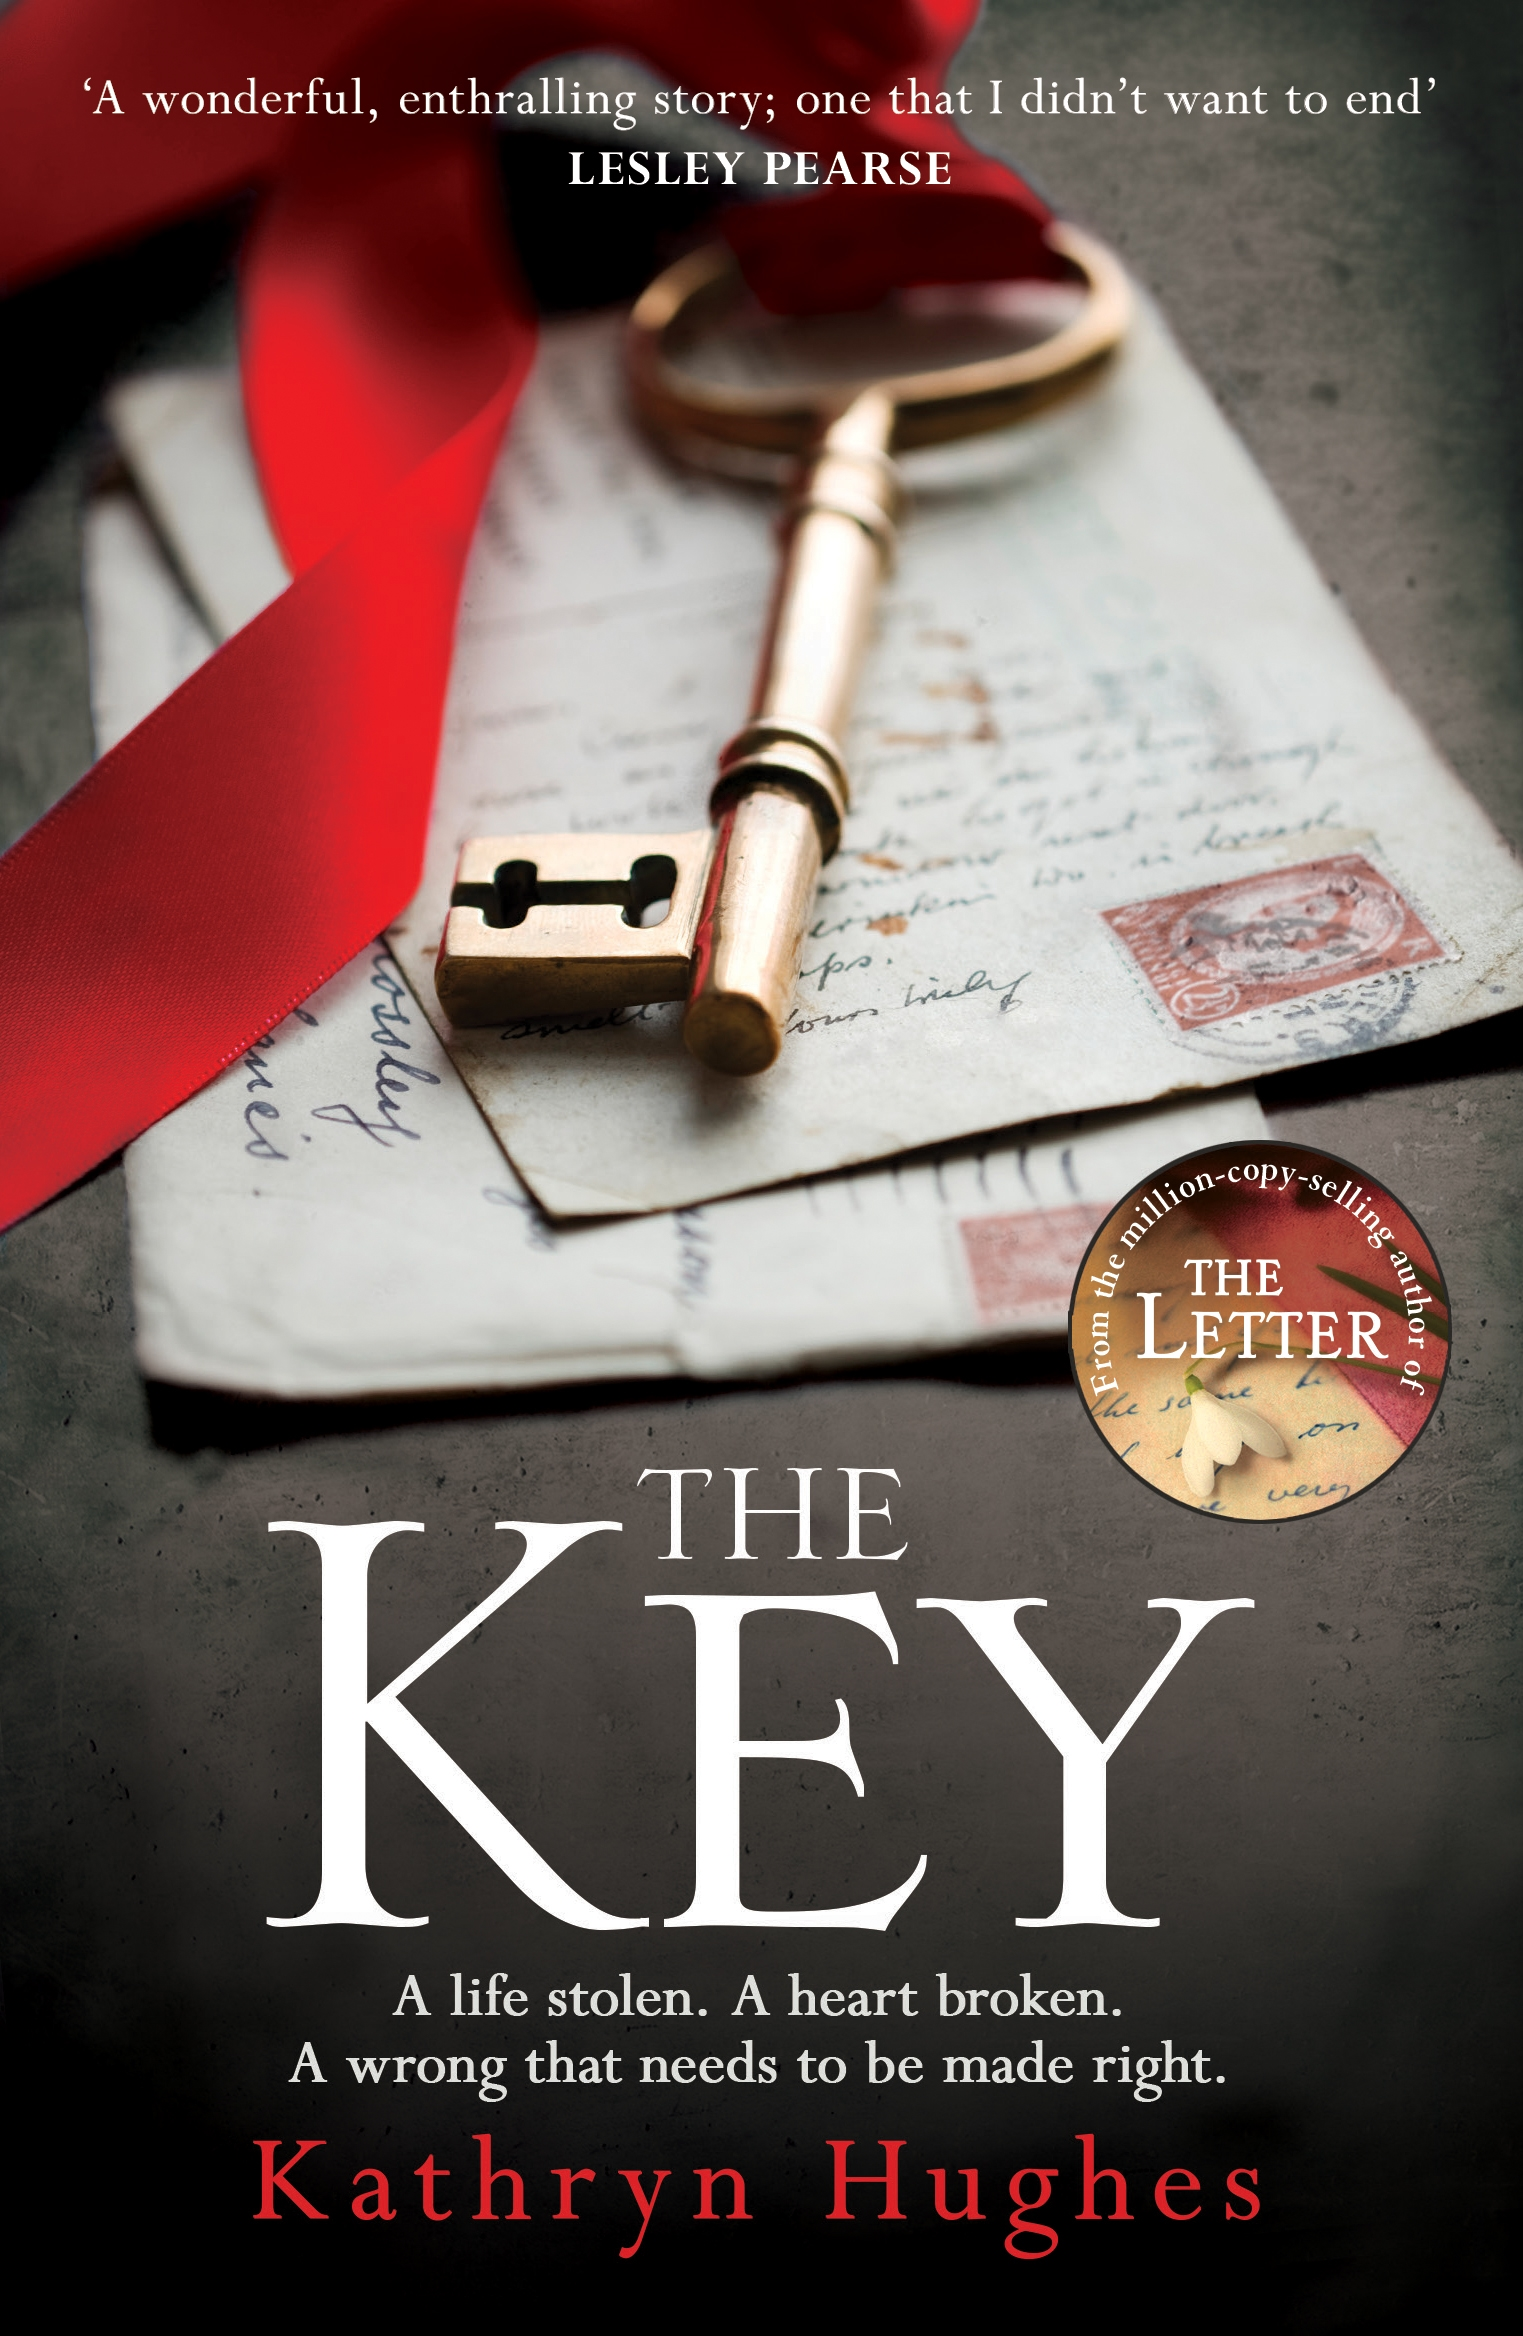 Blog Tour: Q&A with Kathryn Hughes, author of  The Key